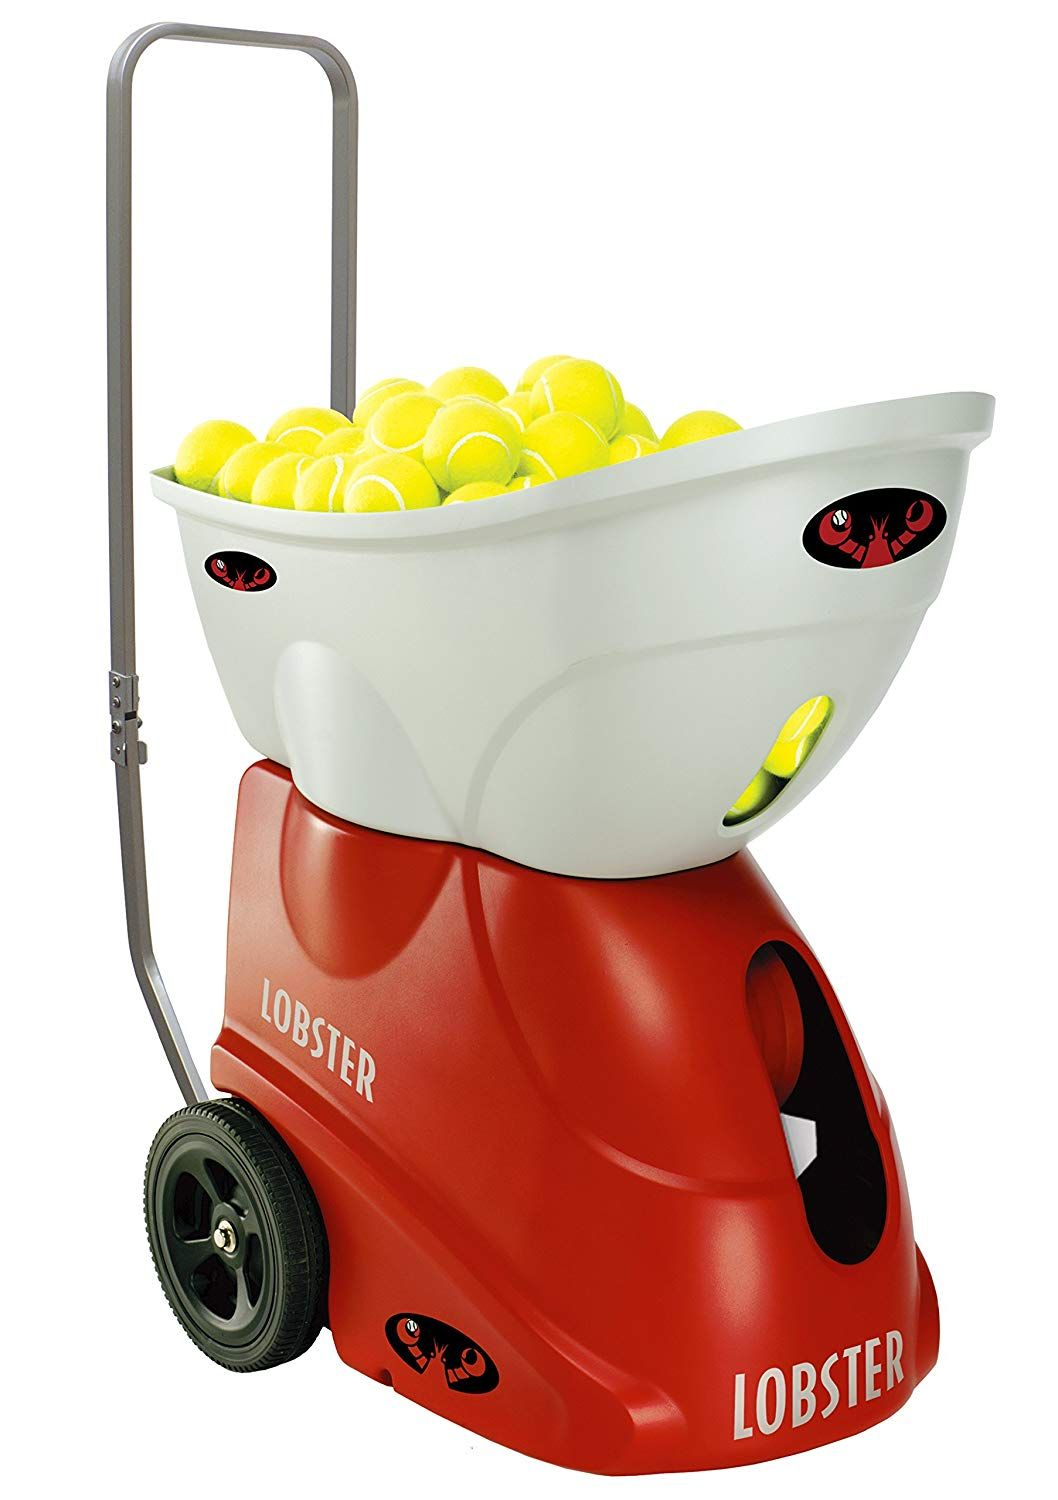 Best Tennis Ball Machine Top 8 Reviews And Buying Guide Tennis Ball Machines Tennis Ball Ball